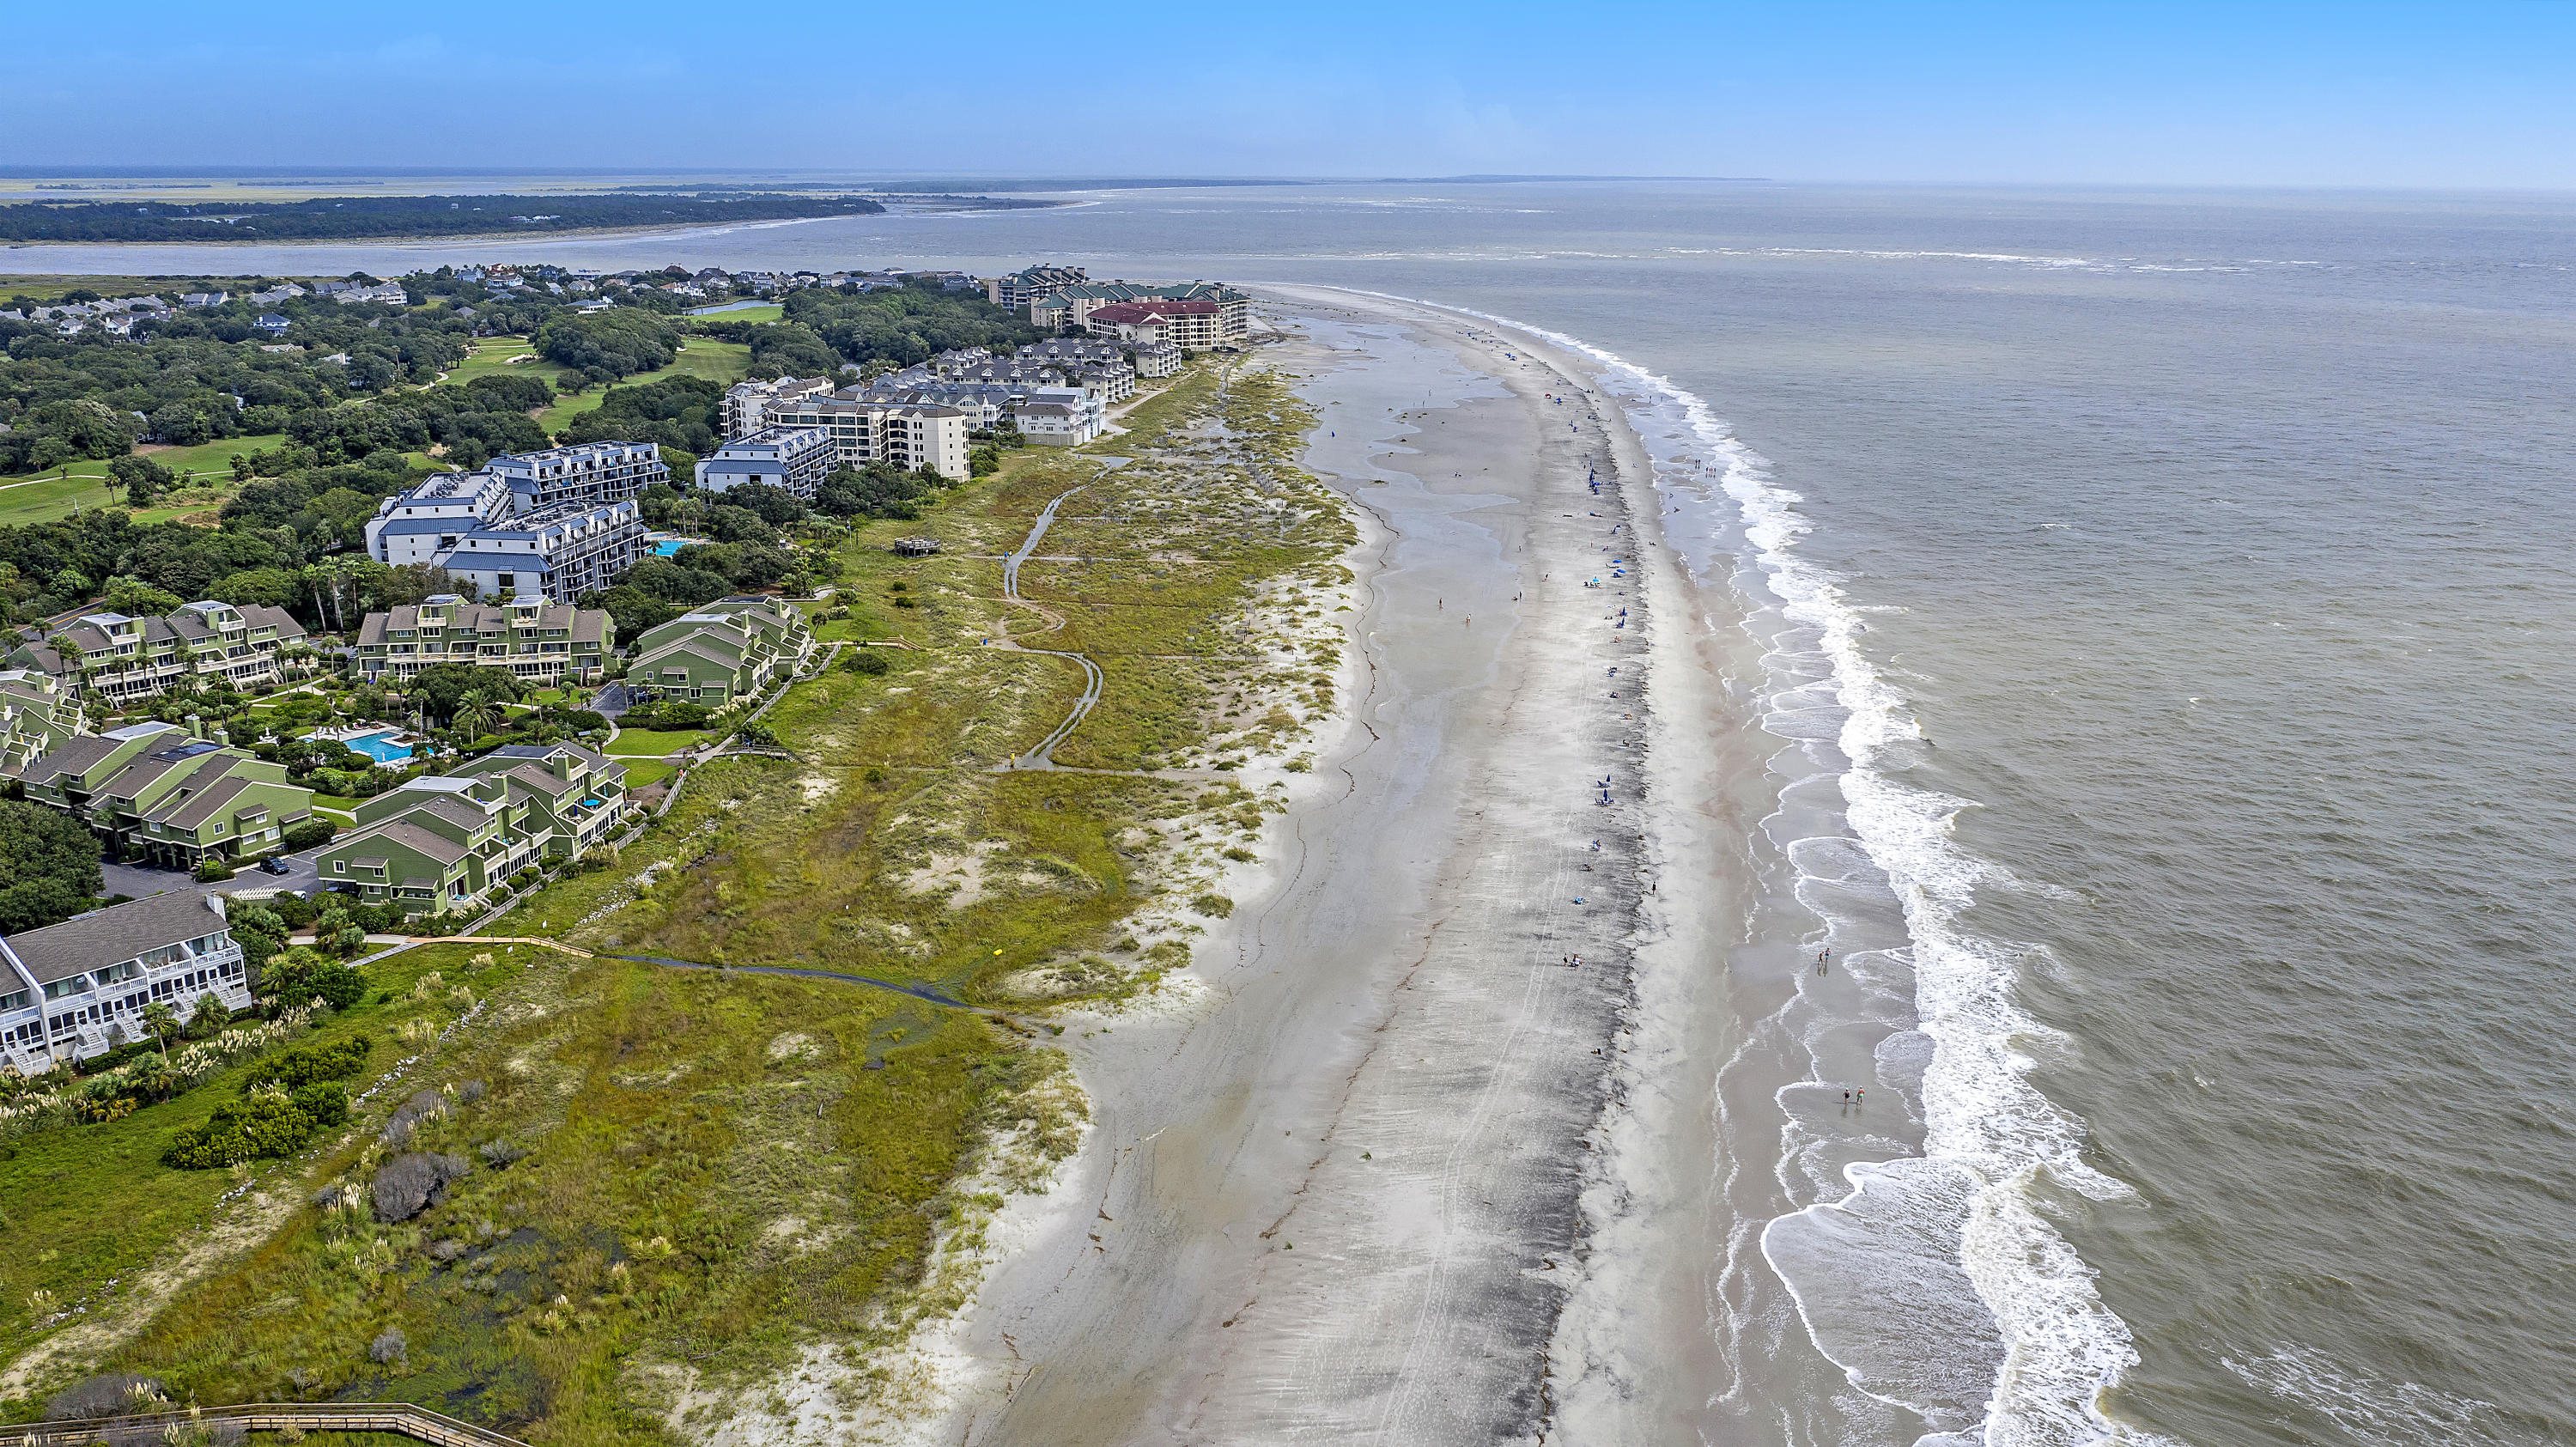 8 Mariners Walk NULL Isle of Palms $715,000.00